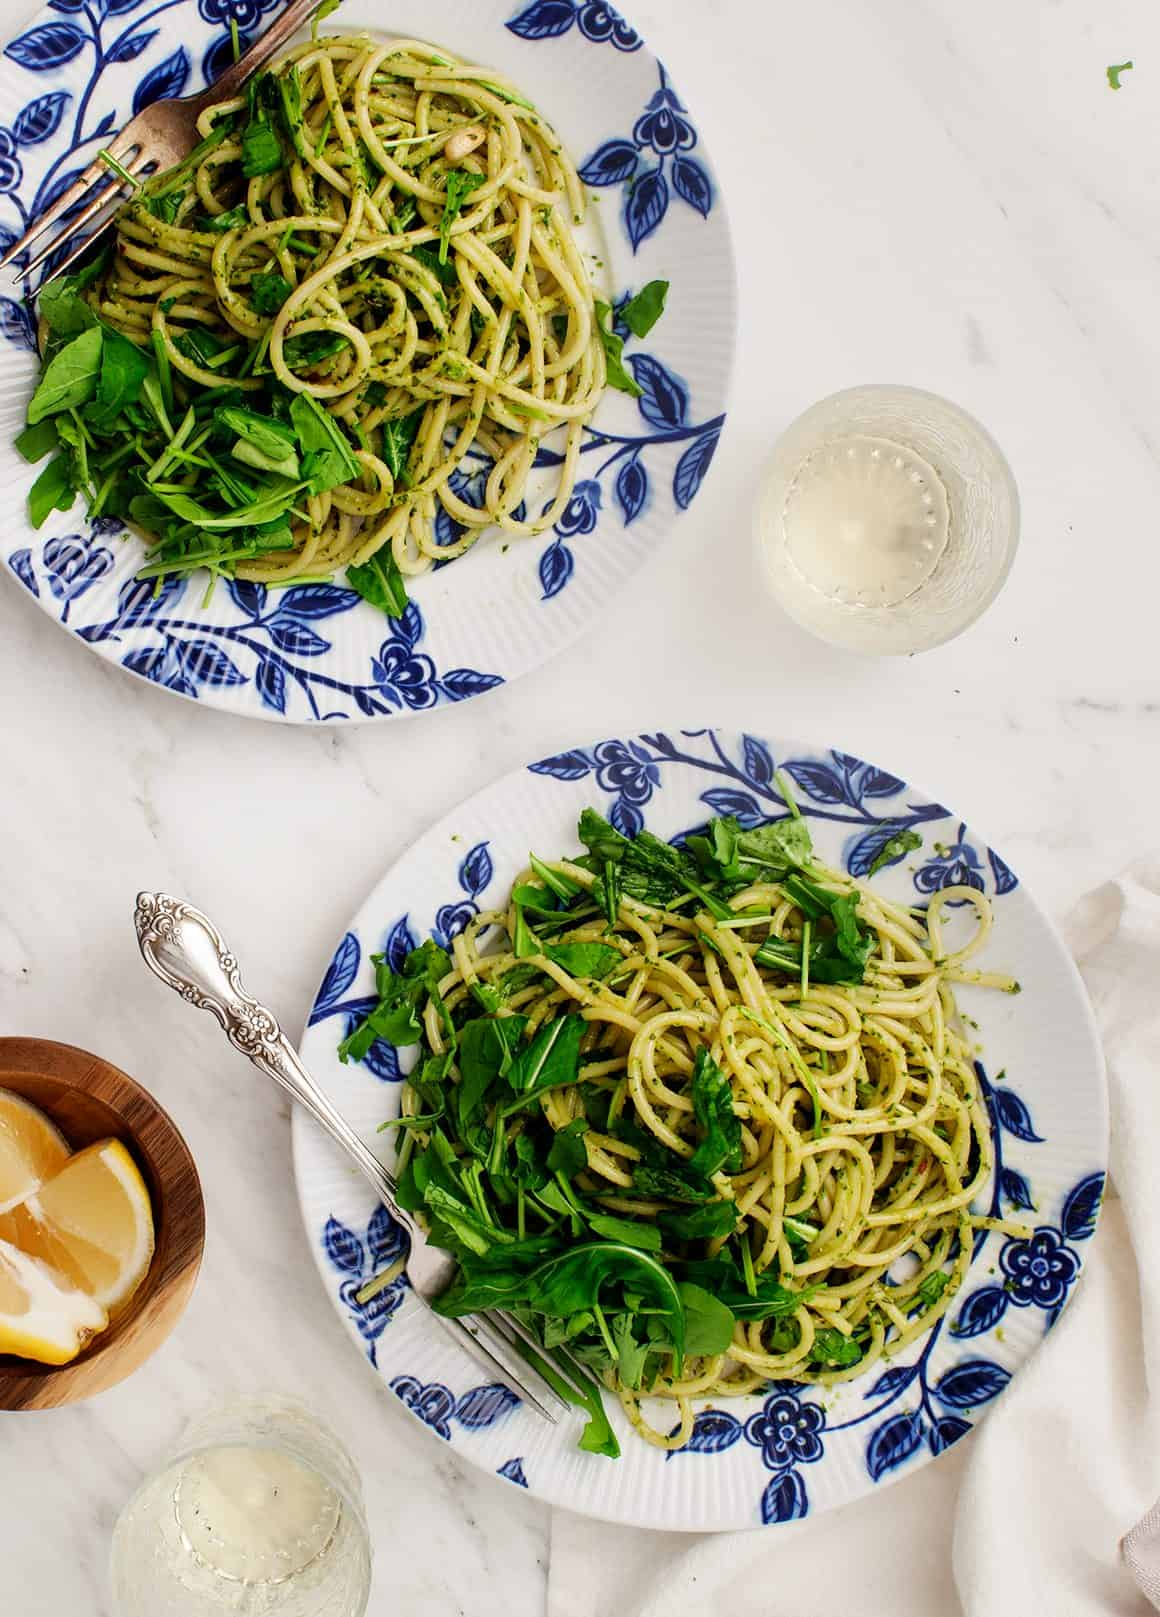 Pesto Pasta with Arugula